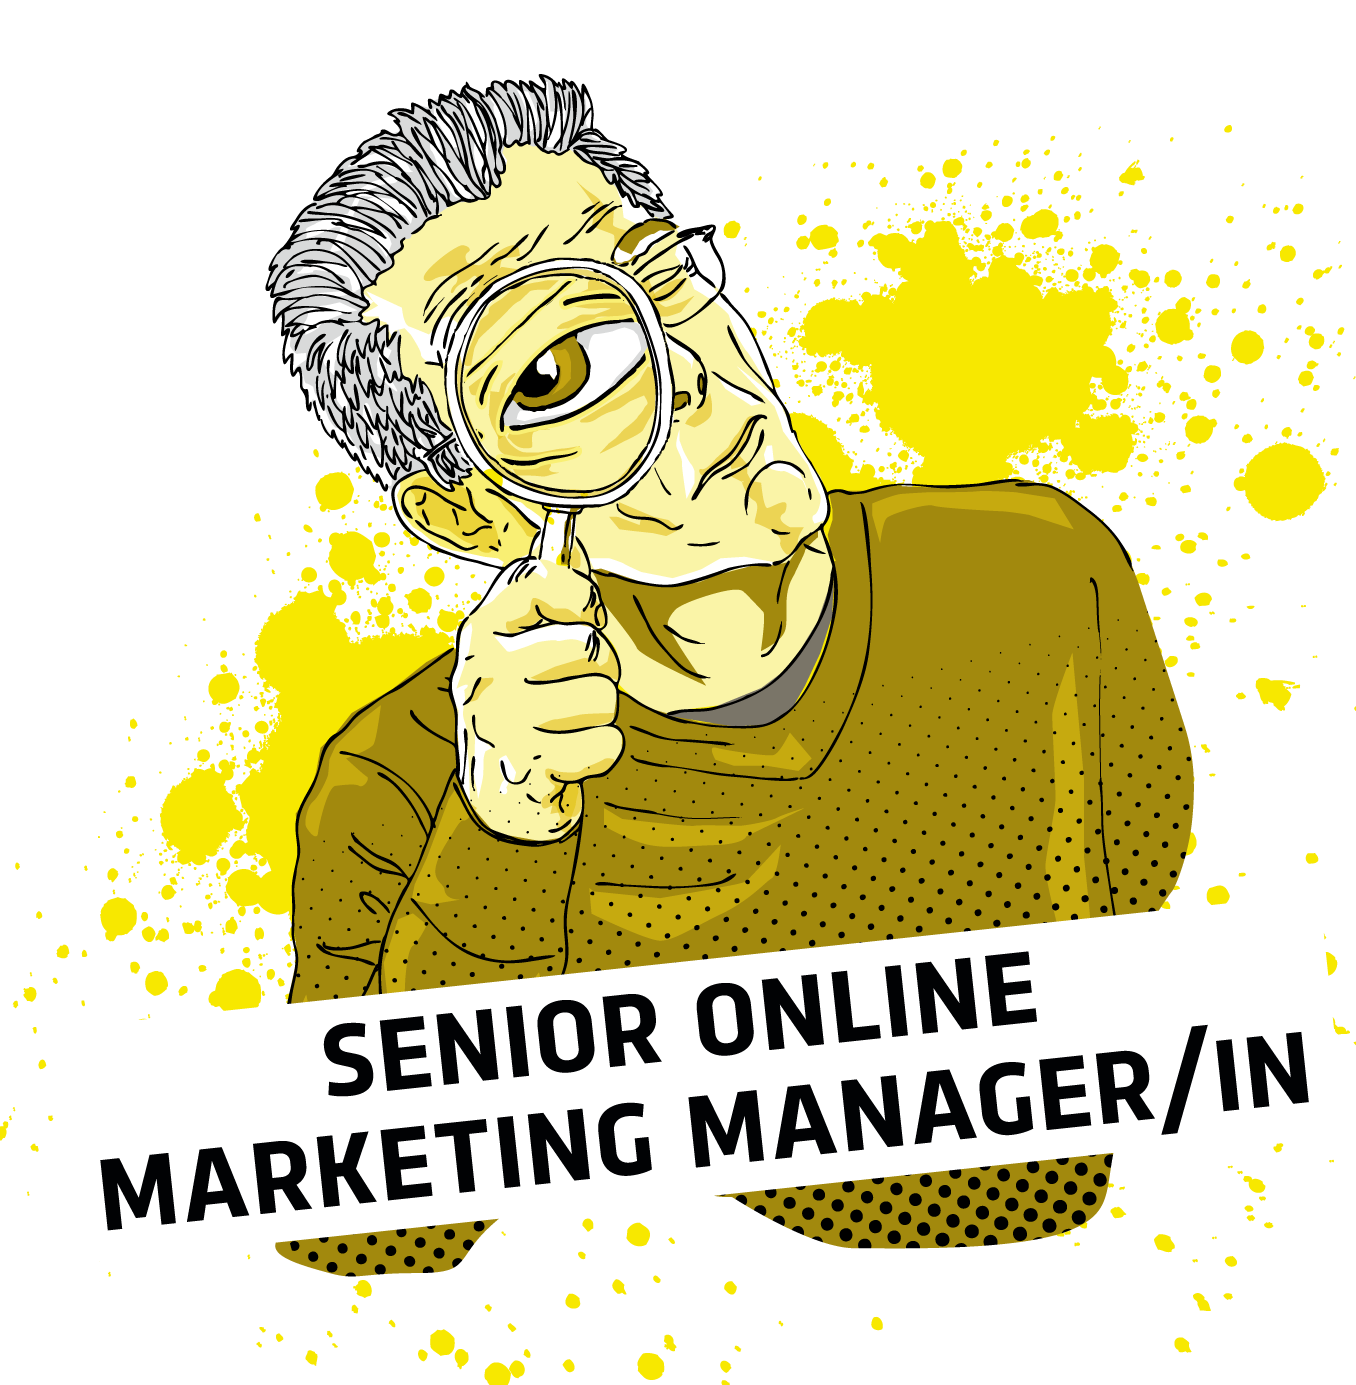 Senior Online Marketing Manager